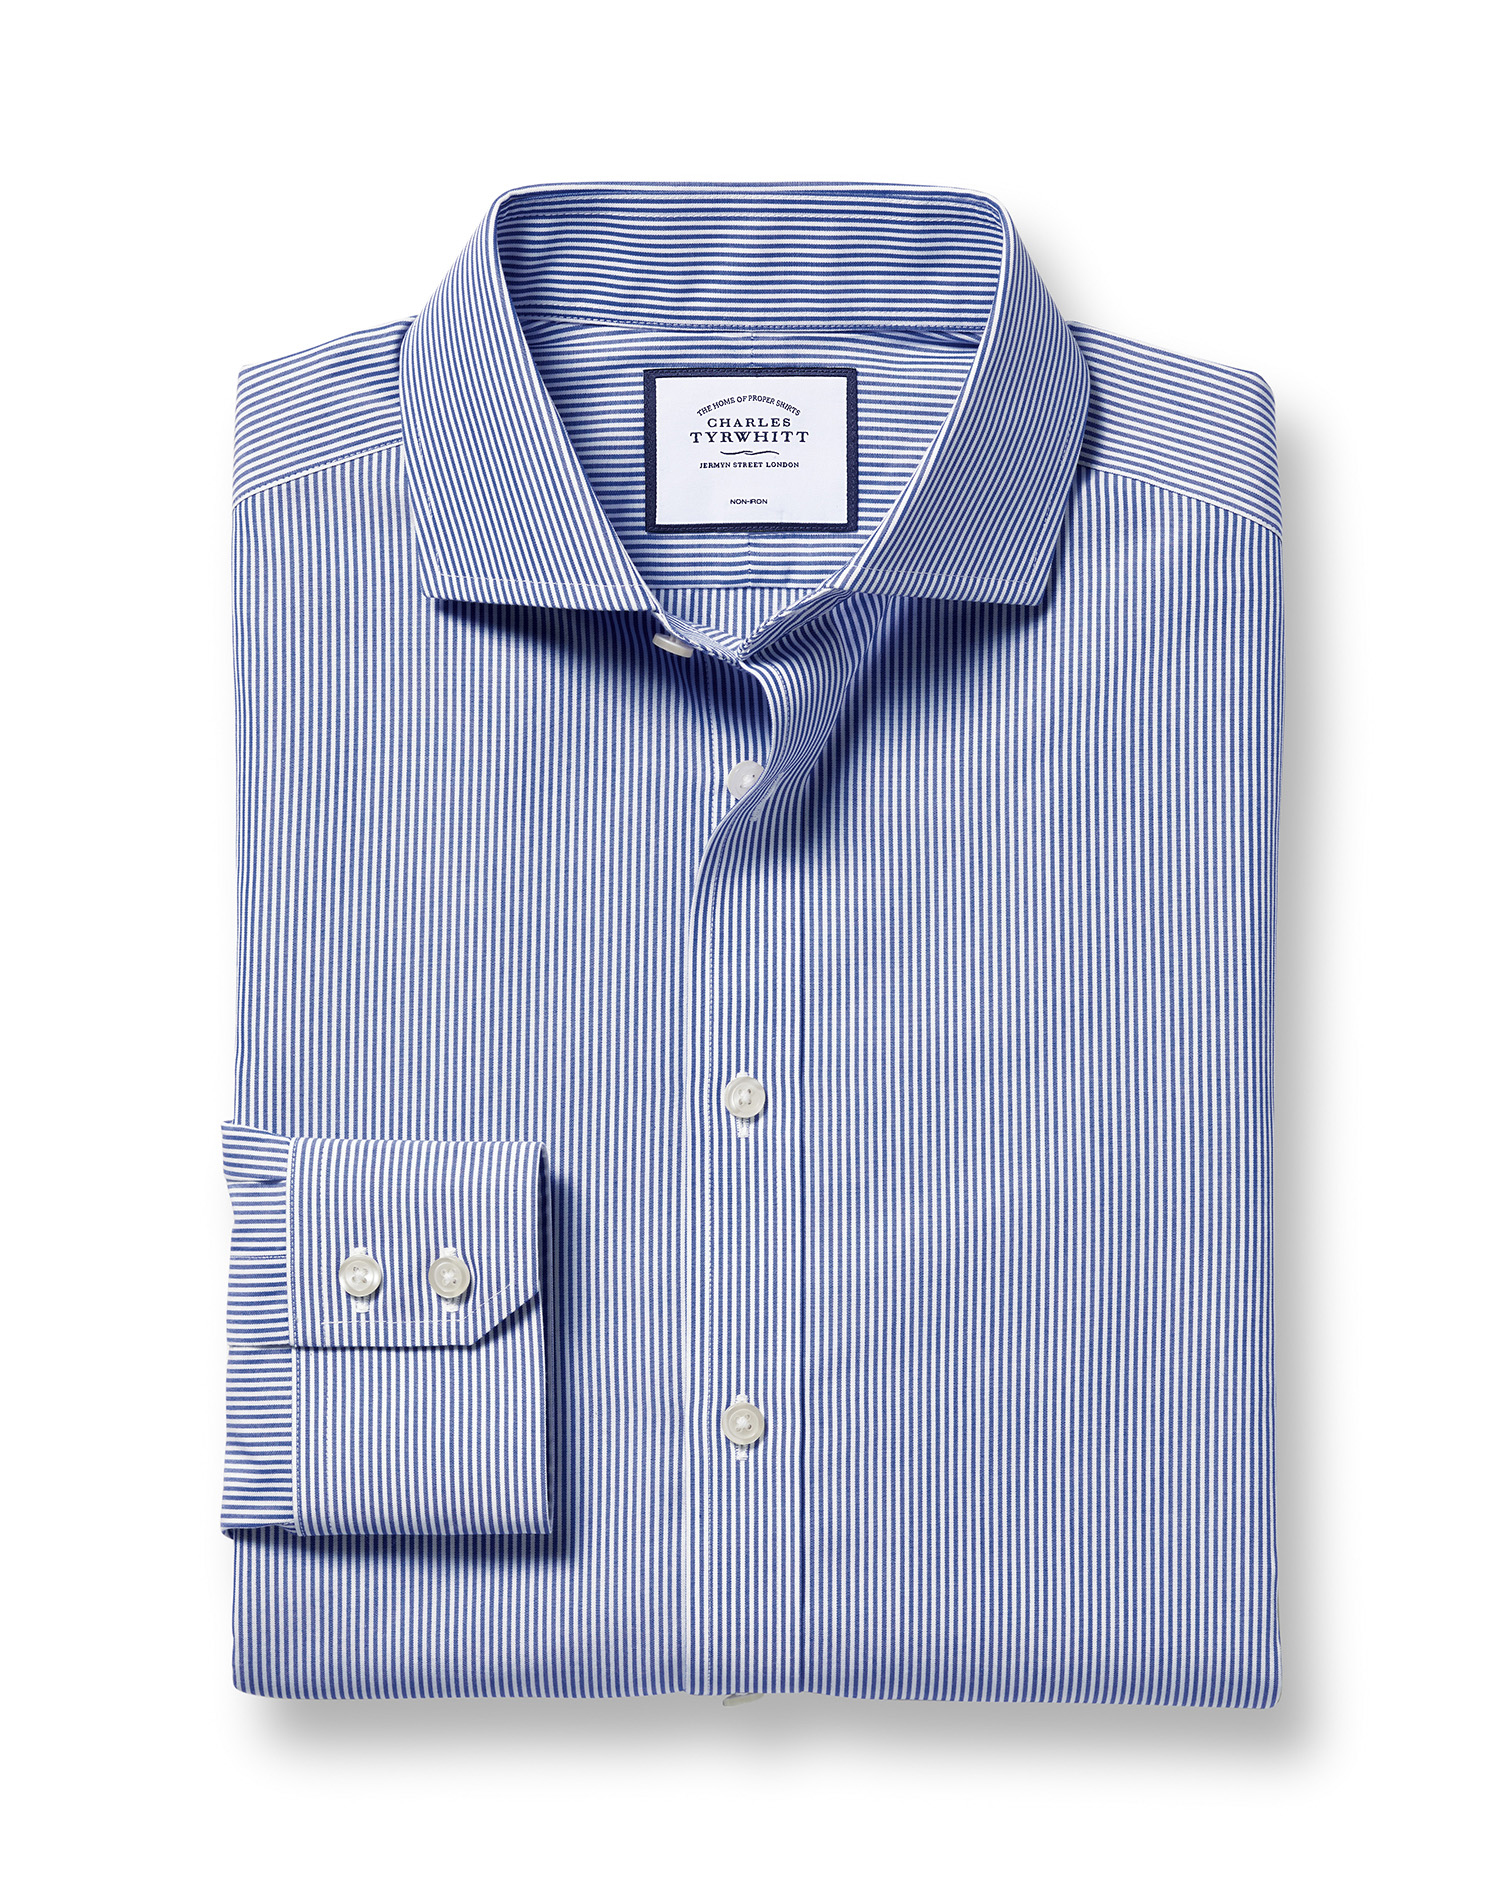 Slim Fit Cutaway Non-Iron Bengal Stripe Navy Blue Cotton Formal Shirt Double Cuff Size 16.5/34 by Ch